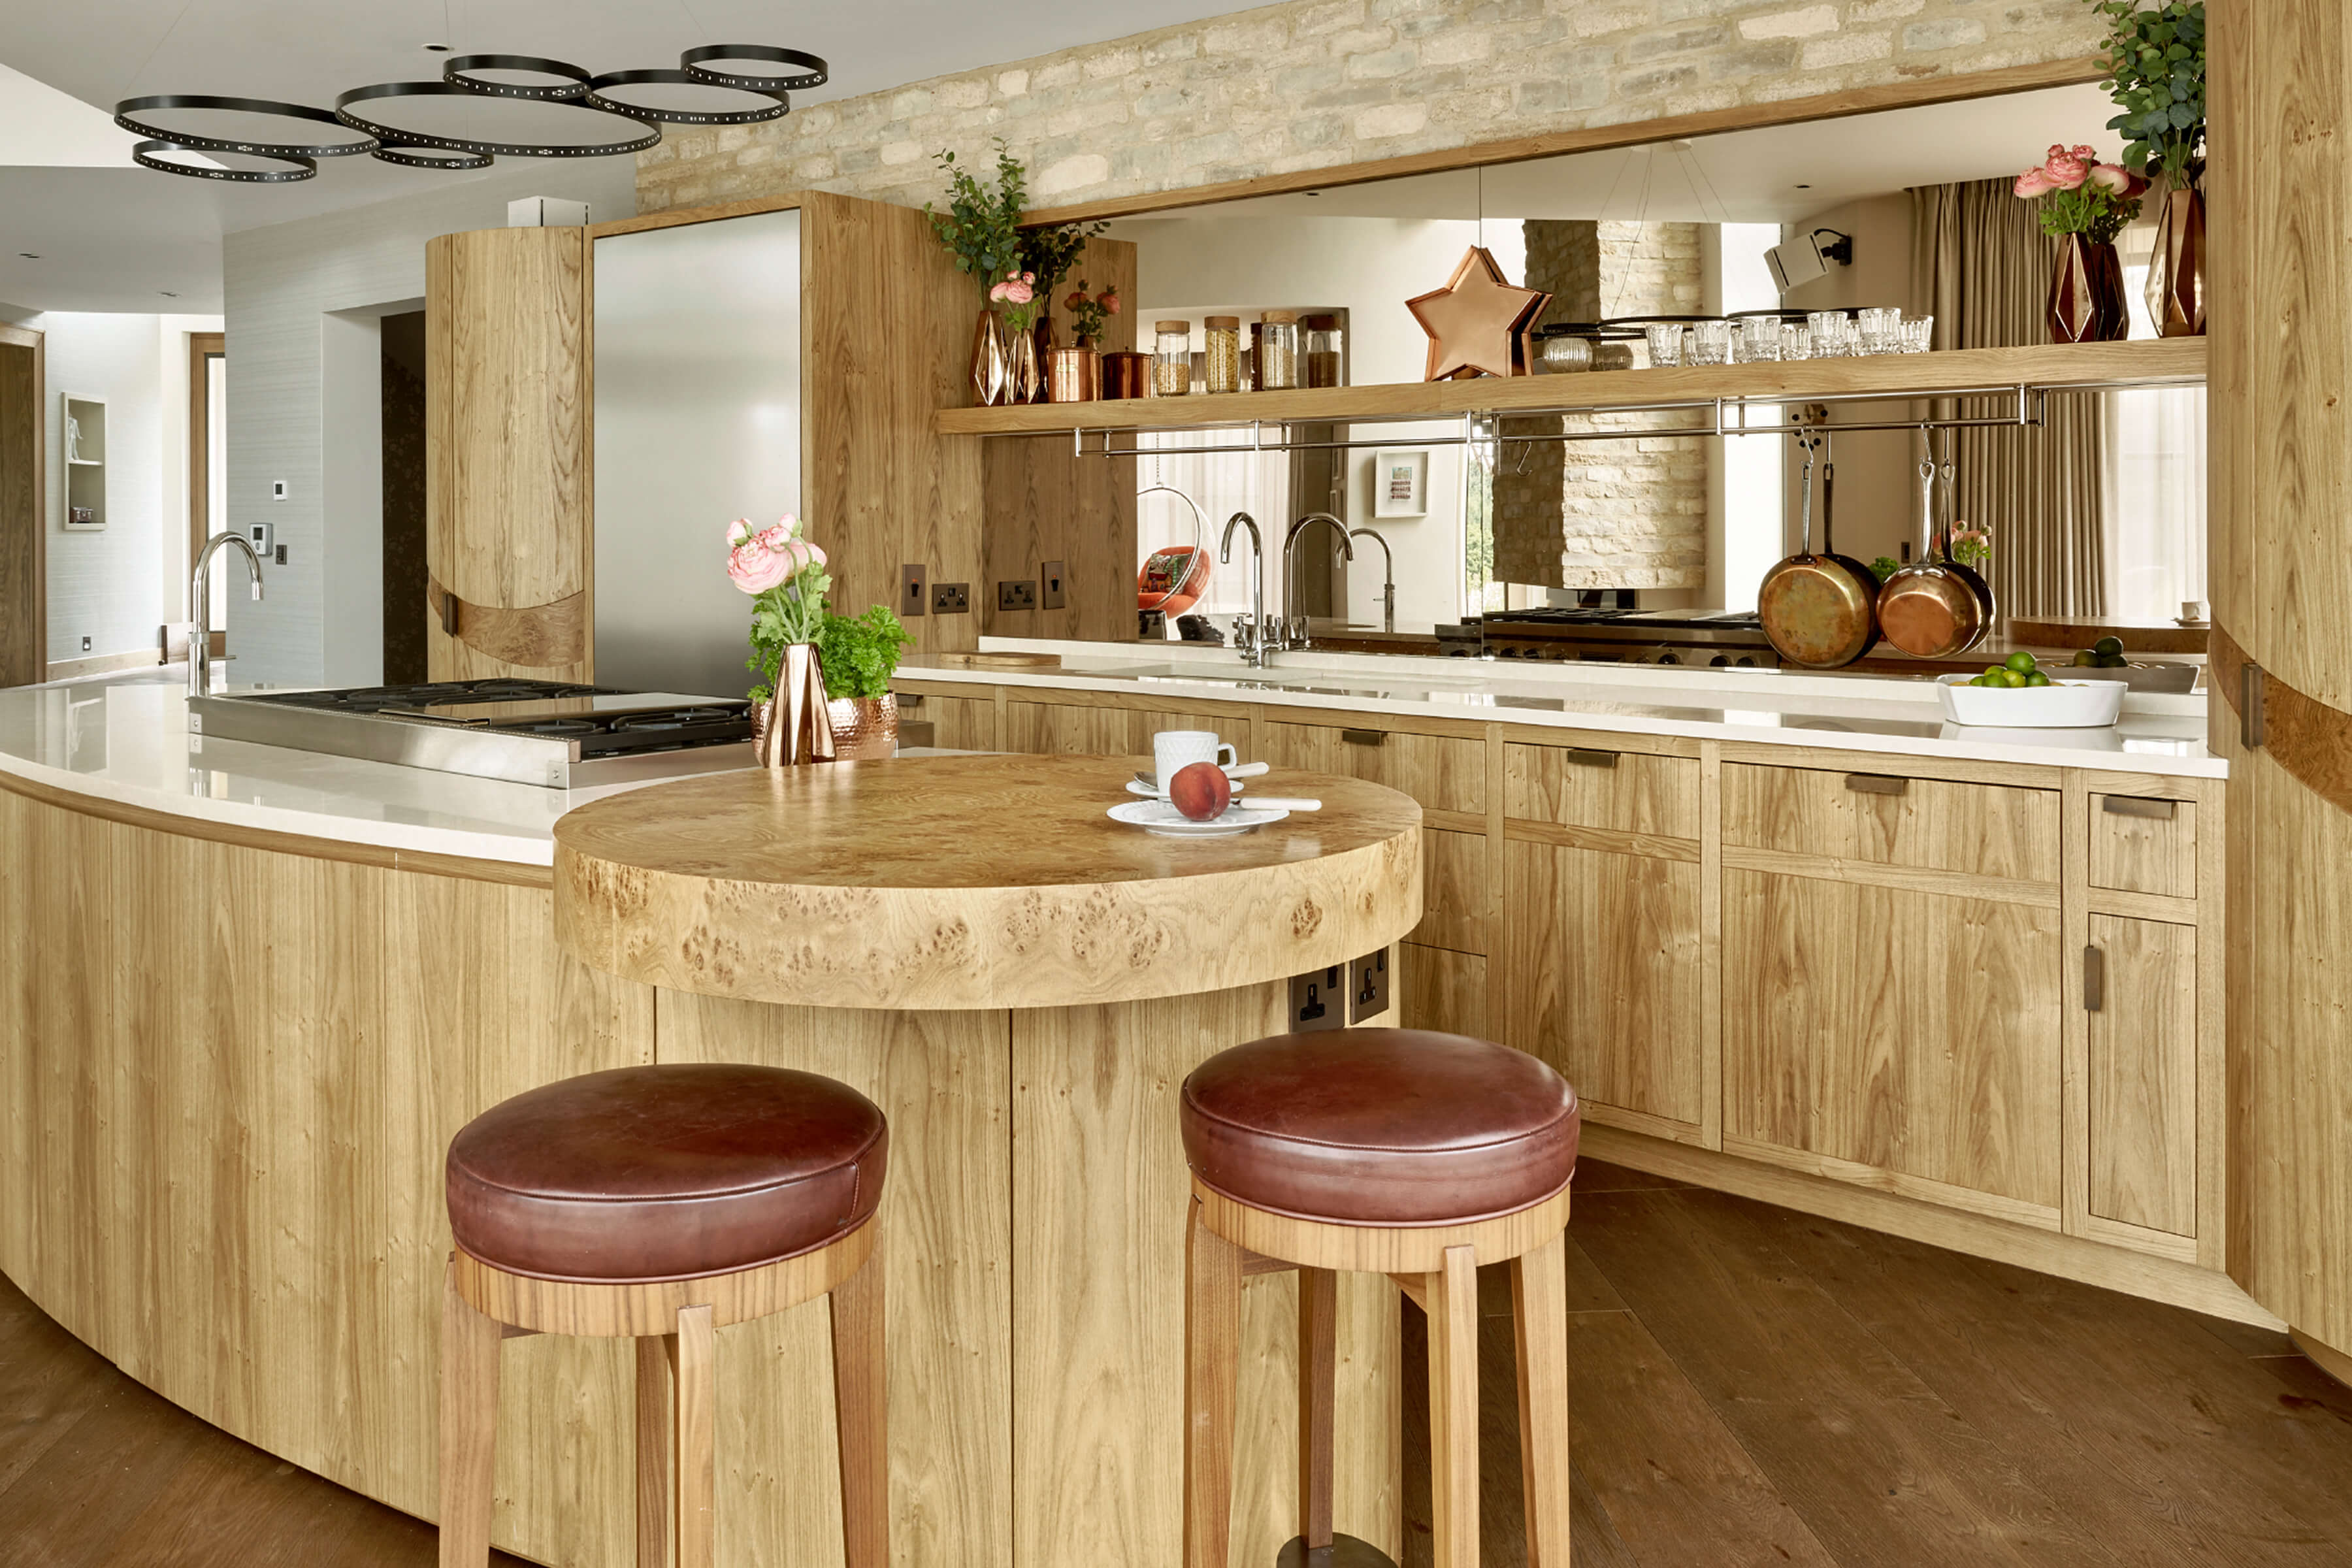 Contemporary oak kitchen with curved cabinetry by Splinterworks